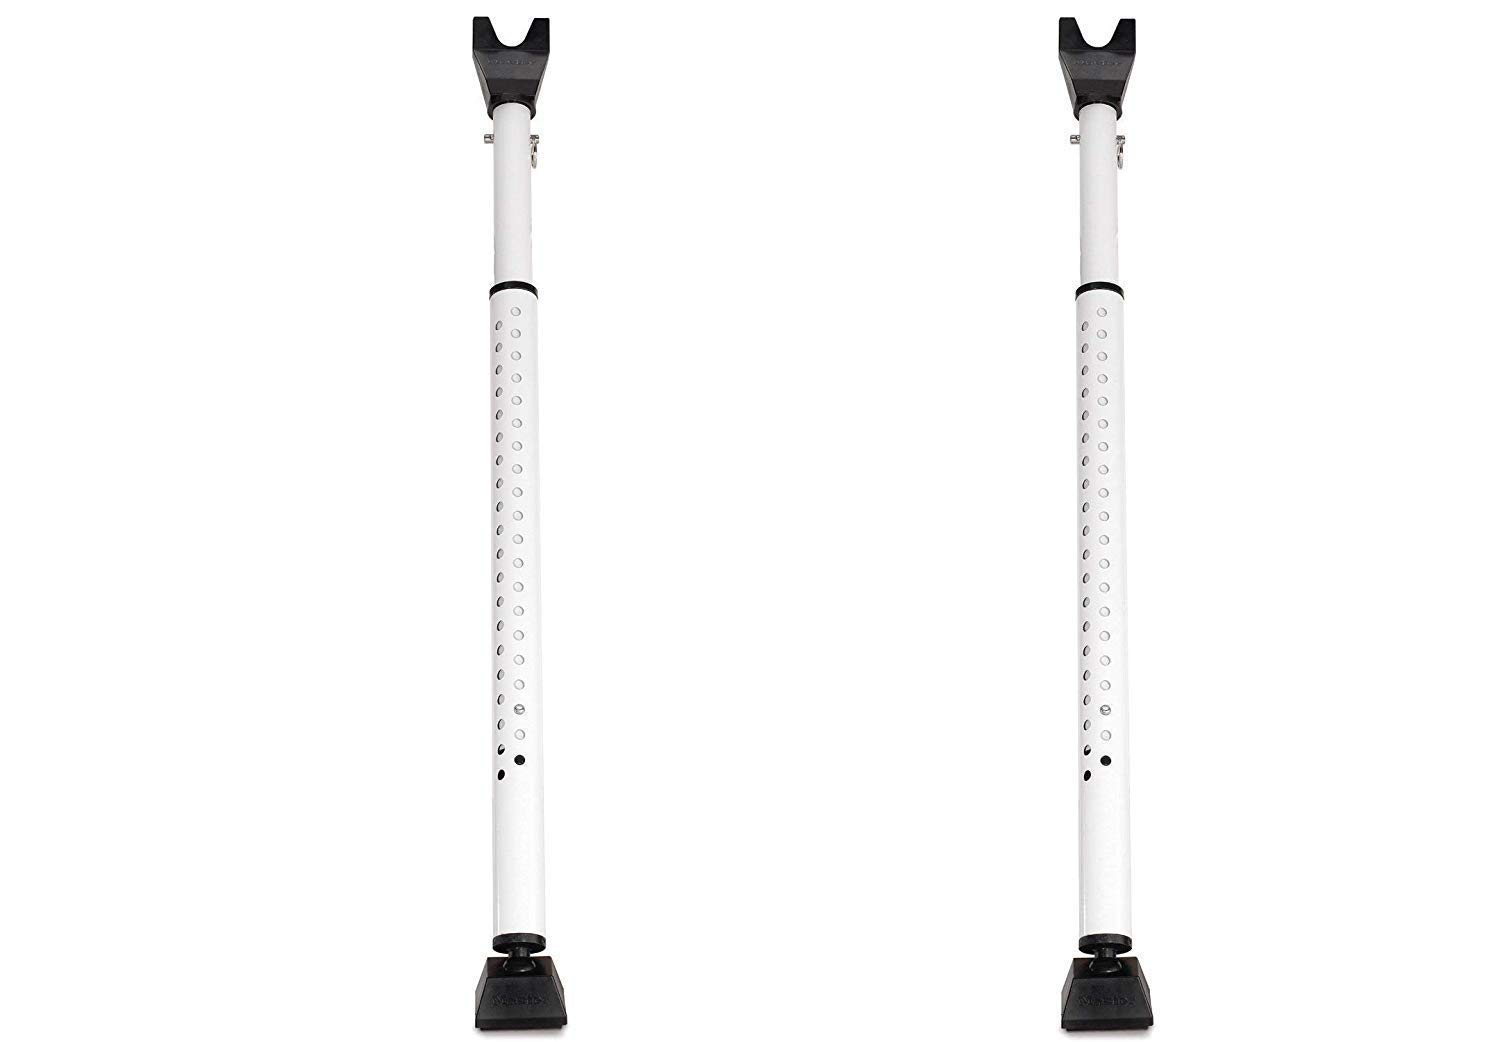 Master Lock 265D Door Security Bar, Adjustable from 27-1/2 in. to 44-1/2 in, White, (Pack of 2)